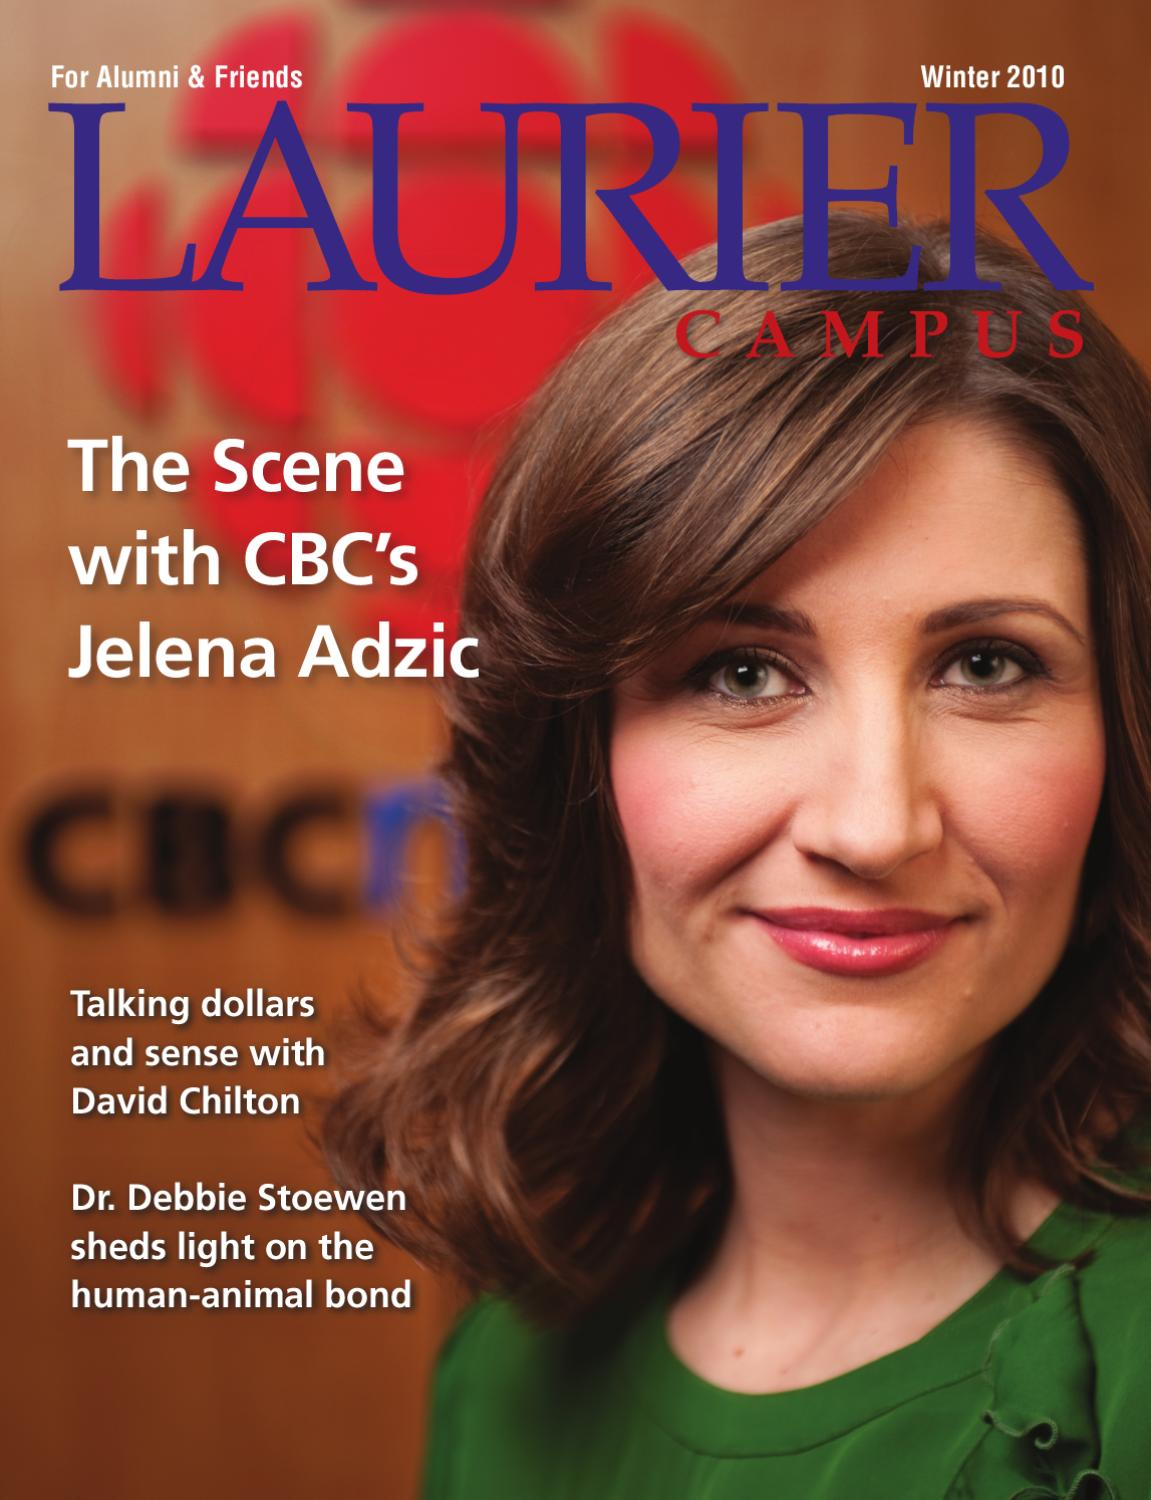 Winter 2010 Campus Magazine By Wilfrid Laurier University